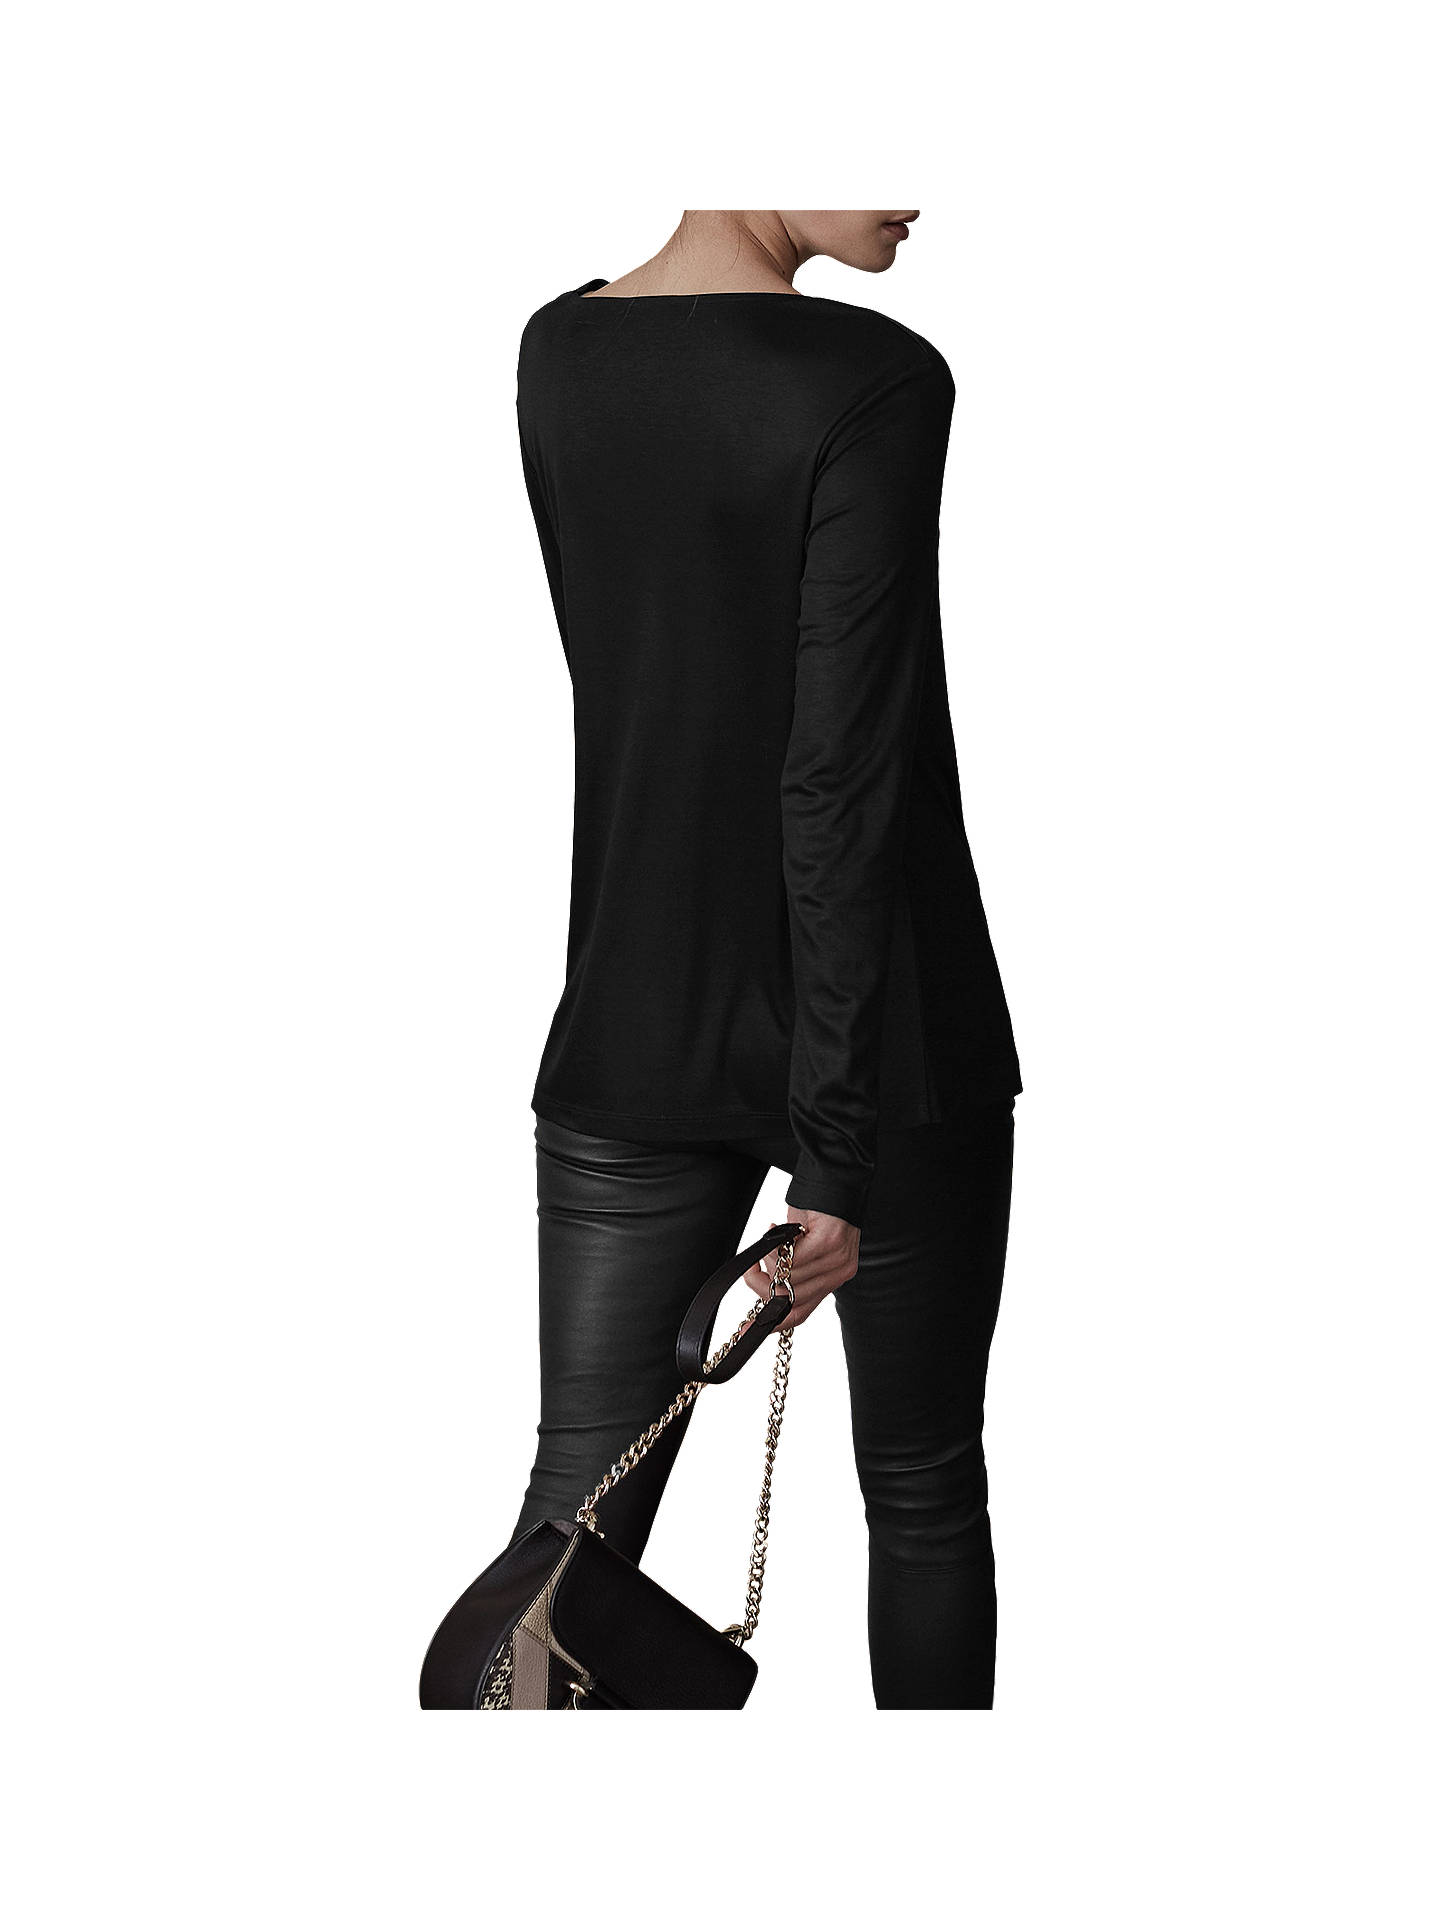 BuyReiss Rox Wrap Long Sleeve Top, Black, XS Online at johnlewis.com